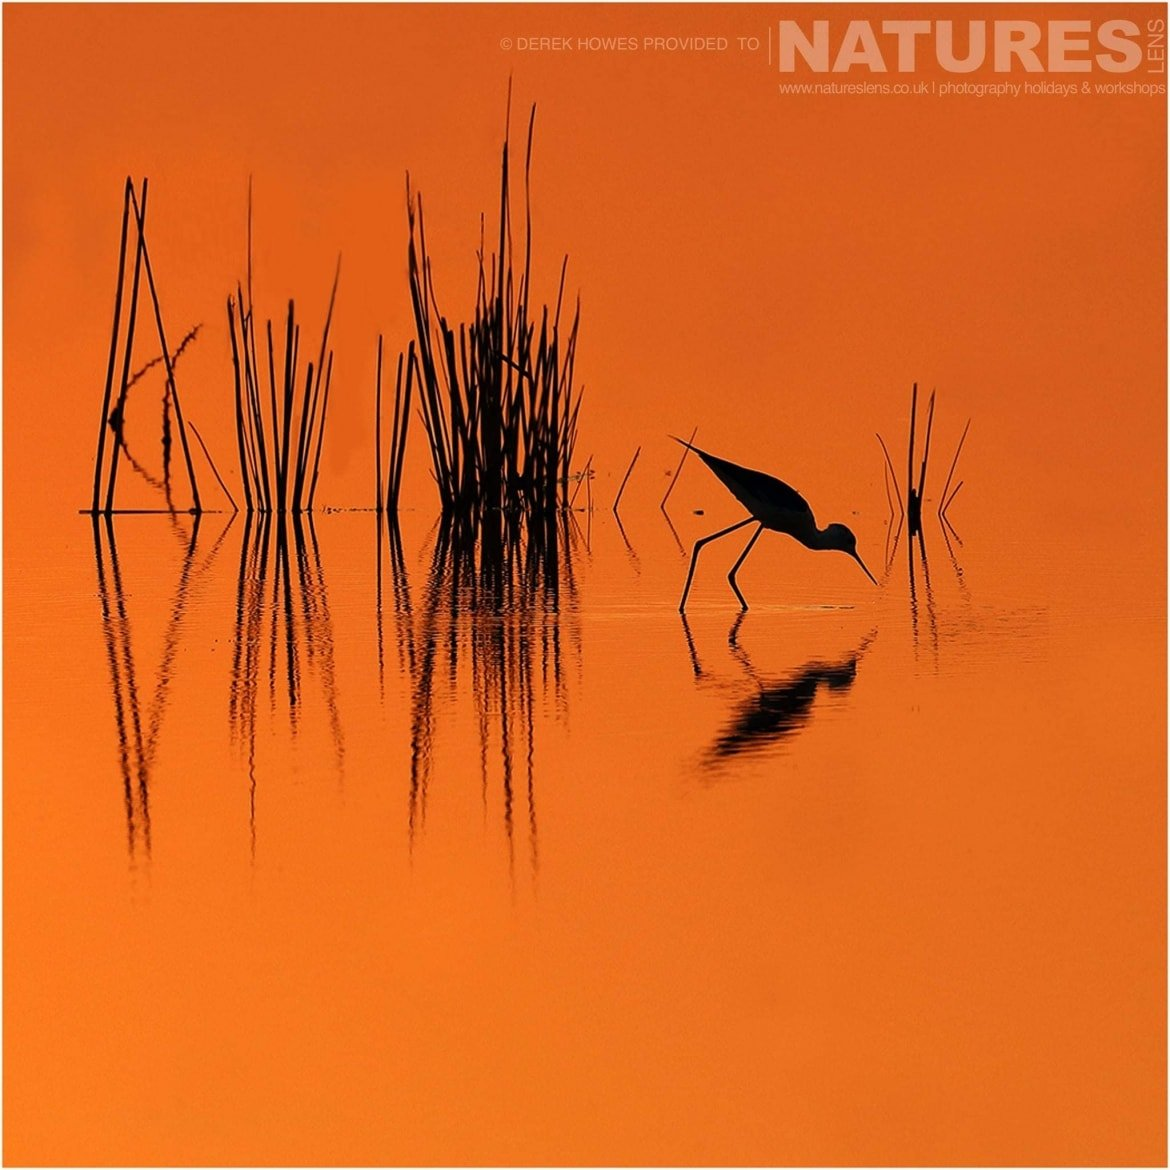 A mirror reflection of a wading bird at sunset in one of the lakes in the Kutch area an image captured during a Natureslens Little Rann of Kutch Photography Holiday